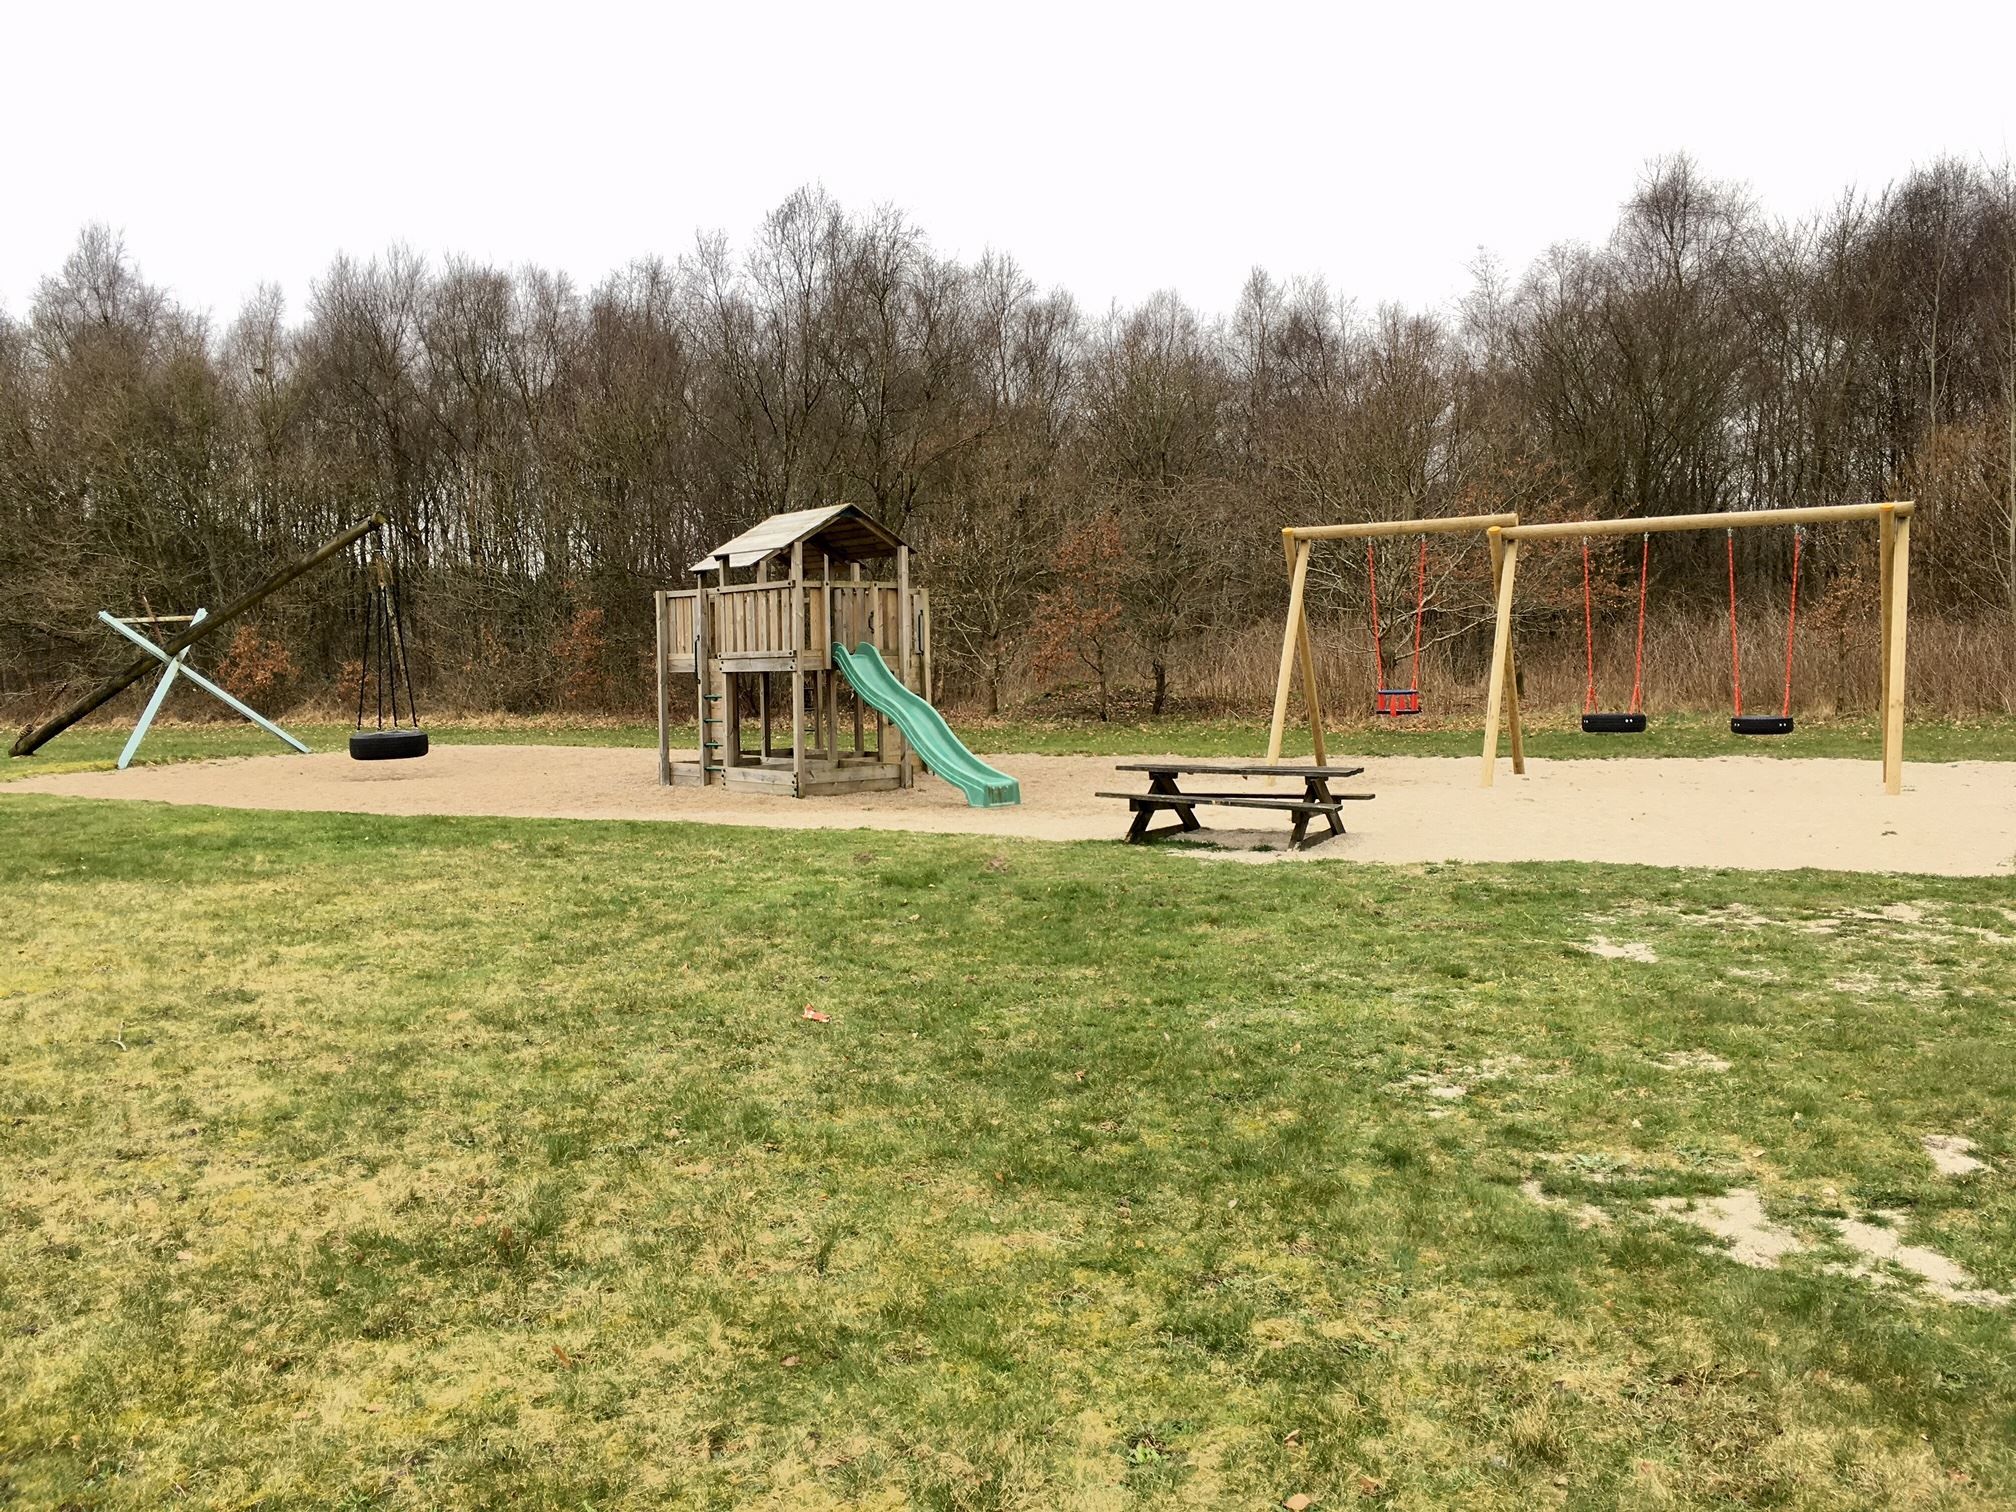 Camping in Tørsbøl - only week 30, 2017